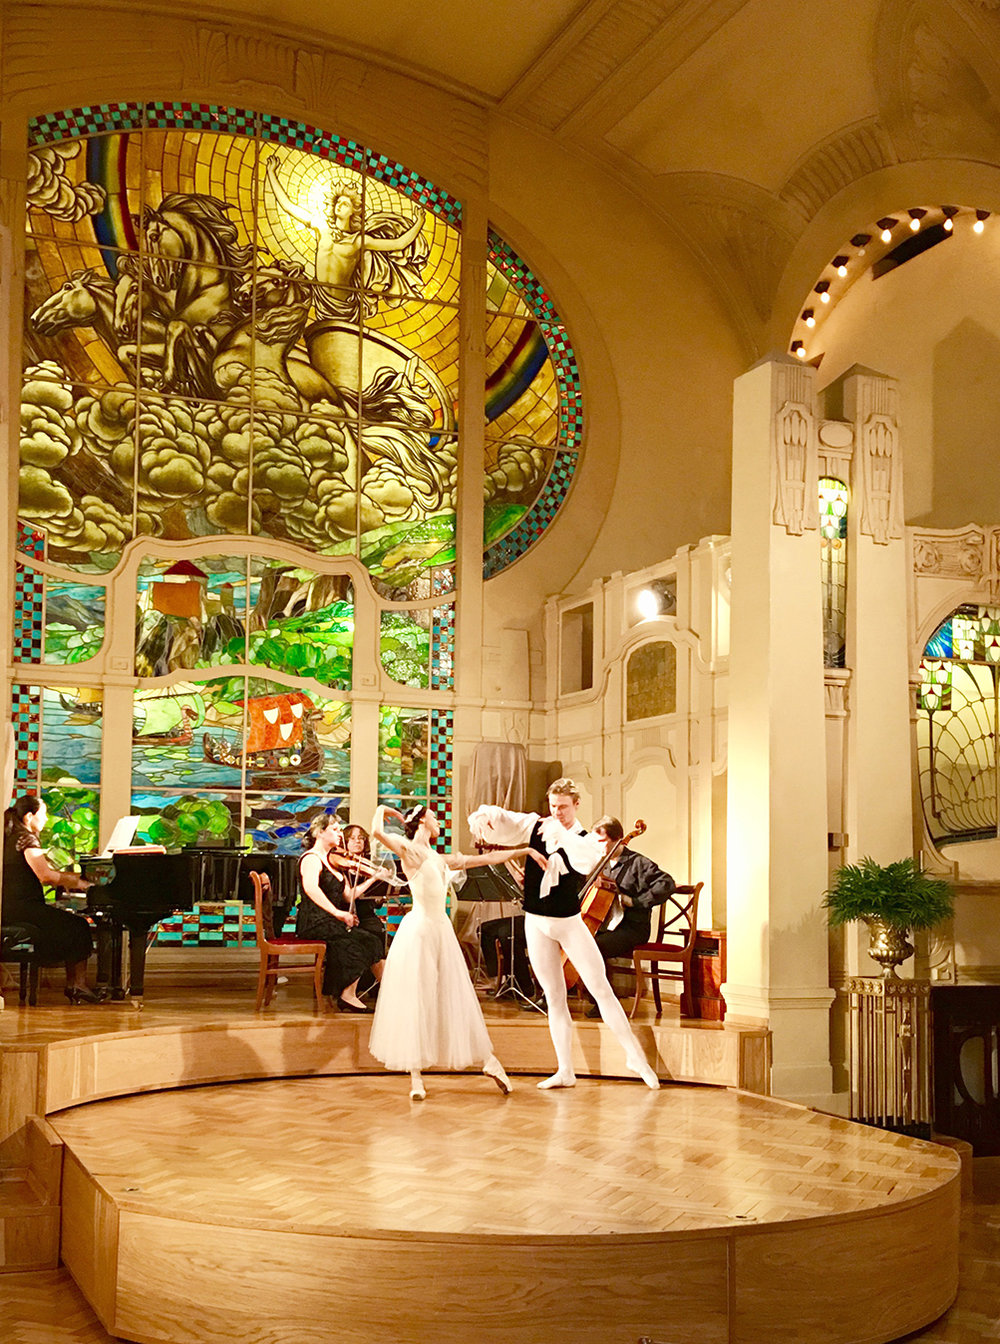 Guests on the tour experienced Tchaikovsky Night—including string quartets, piano and ballet throughout a three-hour meal—at L'Europe Restaurant in St. Petersburg.